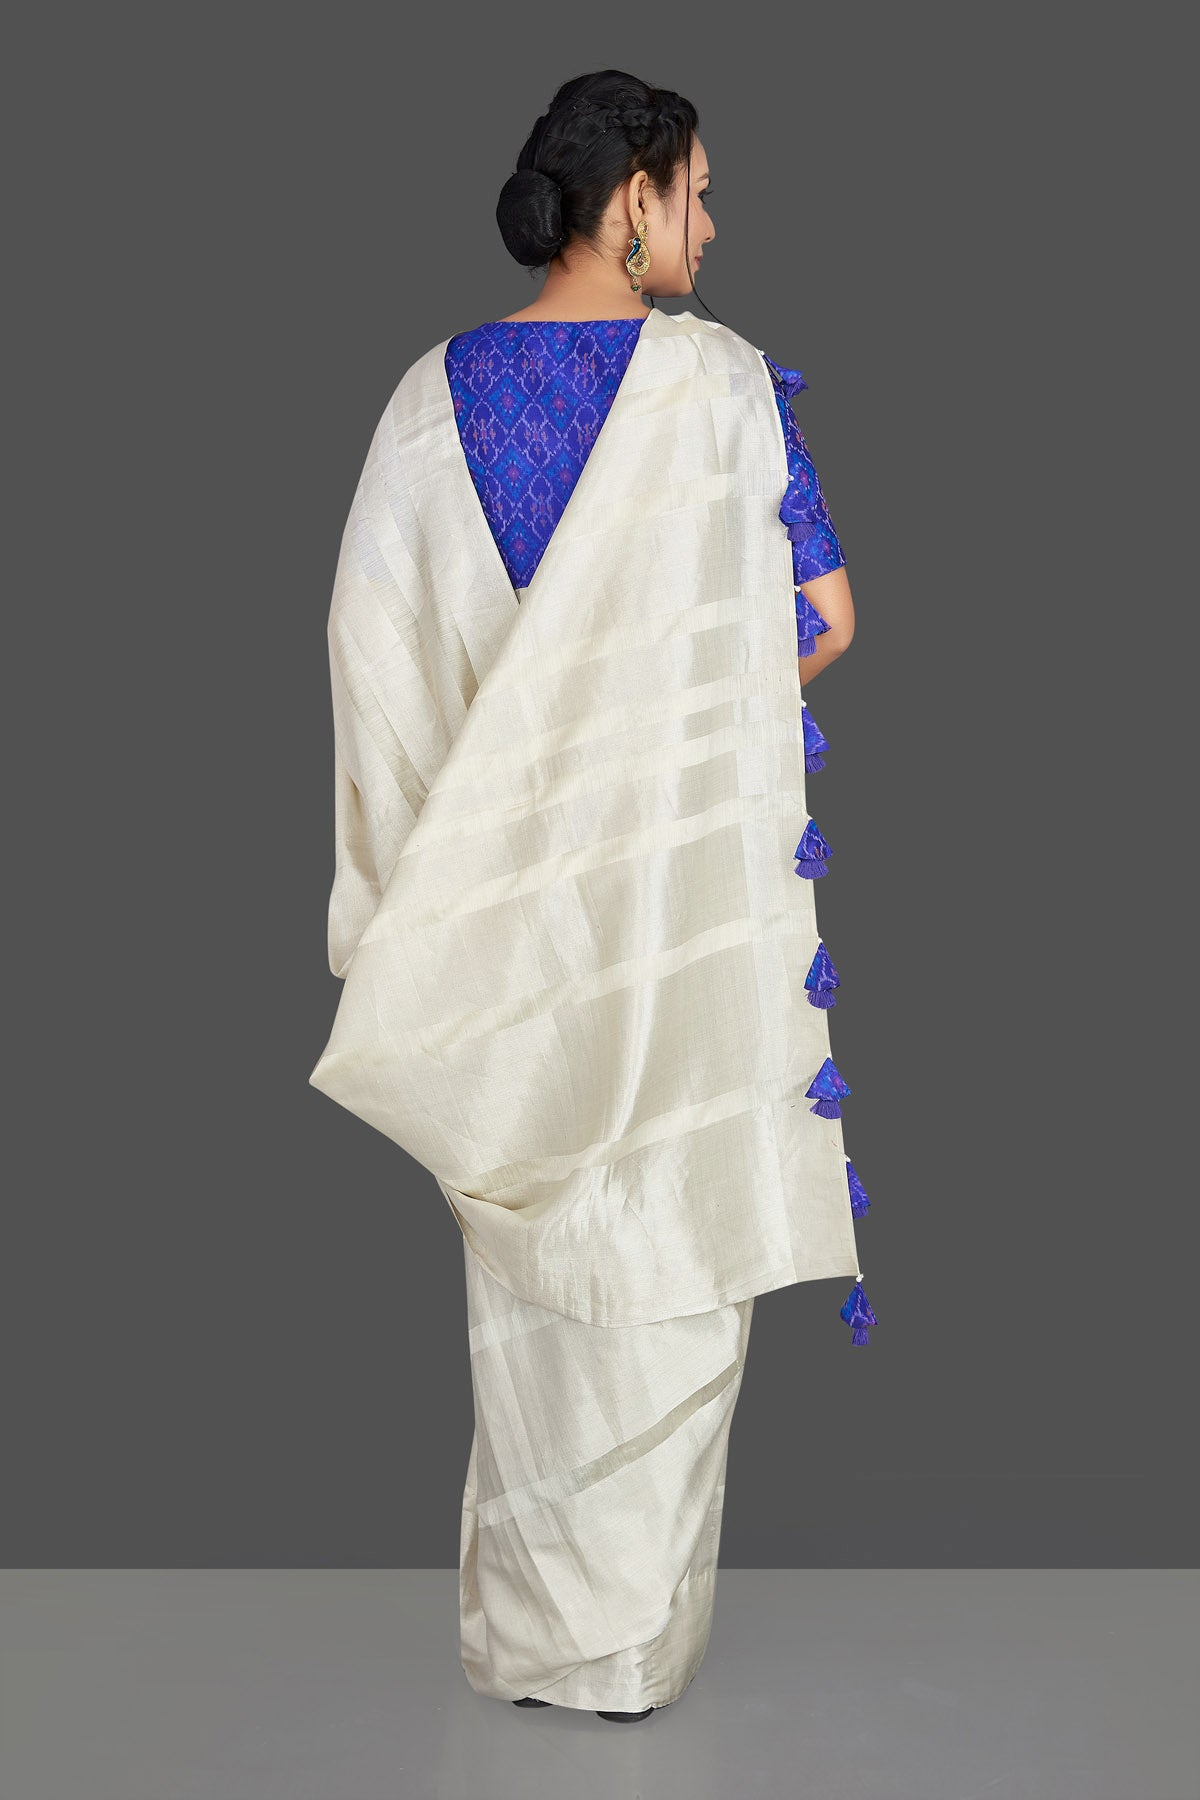 Buy lovely off-white tassar silk sari online in USA with blue patola ikkat saree blouse. Make your ethnic wardrobe rich with timeless handwoven sarees, tissue sarees, silk sarees, tussar saris from Pure Elegance Indian clothing store in USA. Find all the designer sarees for special occasions under one roof!-back